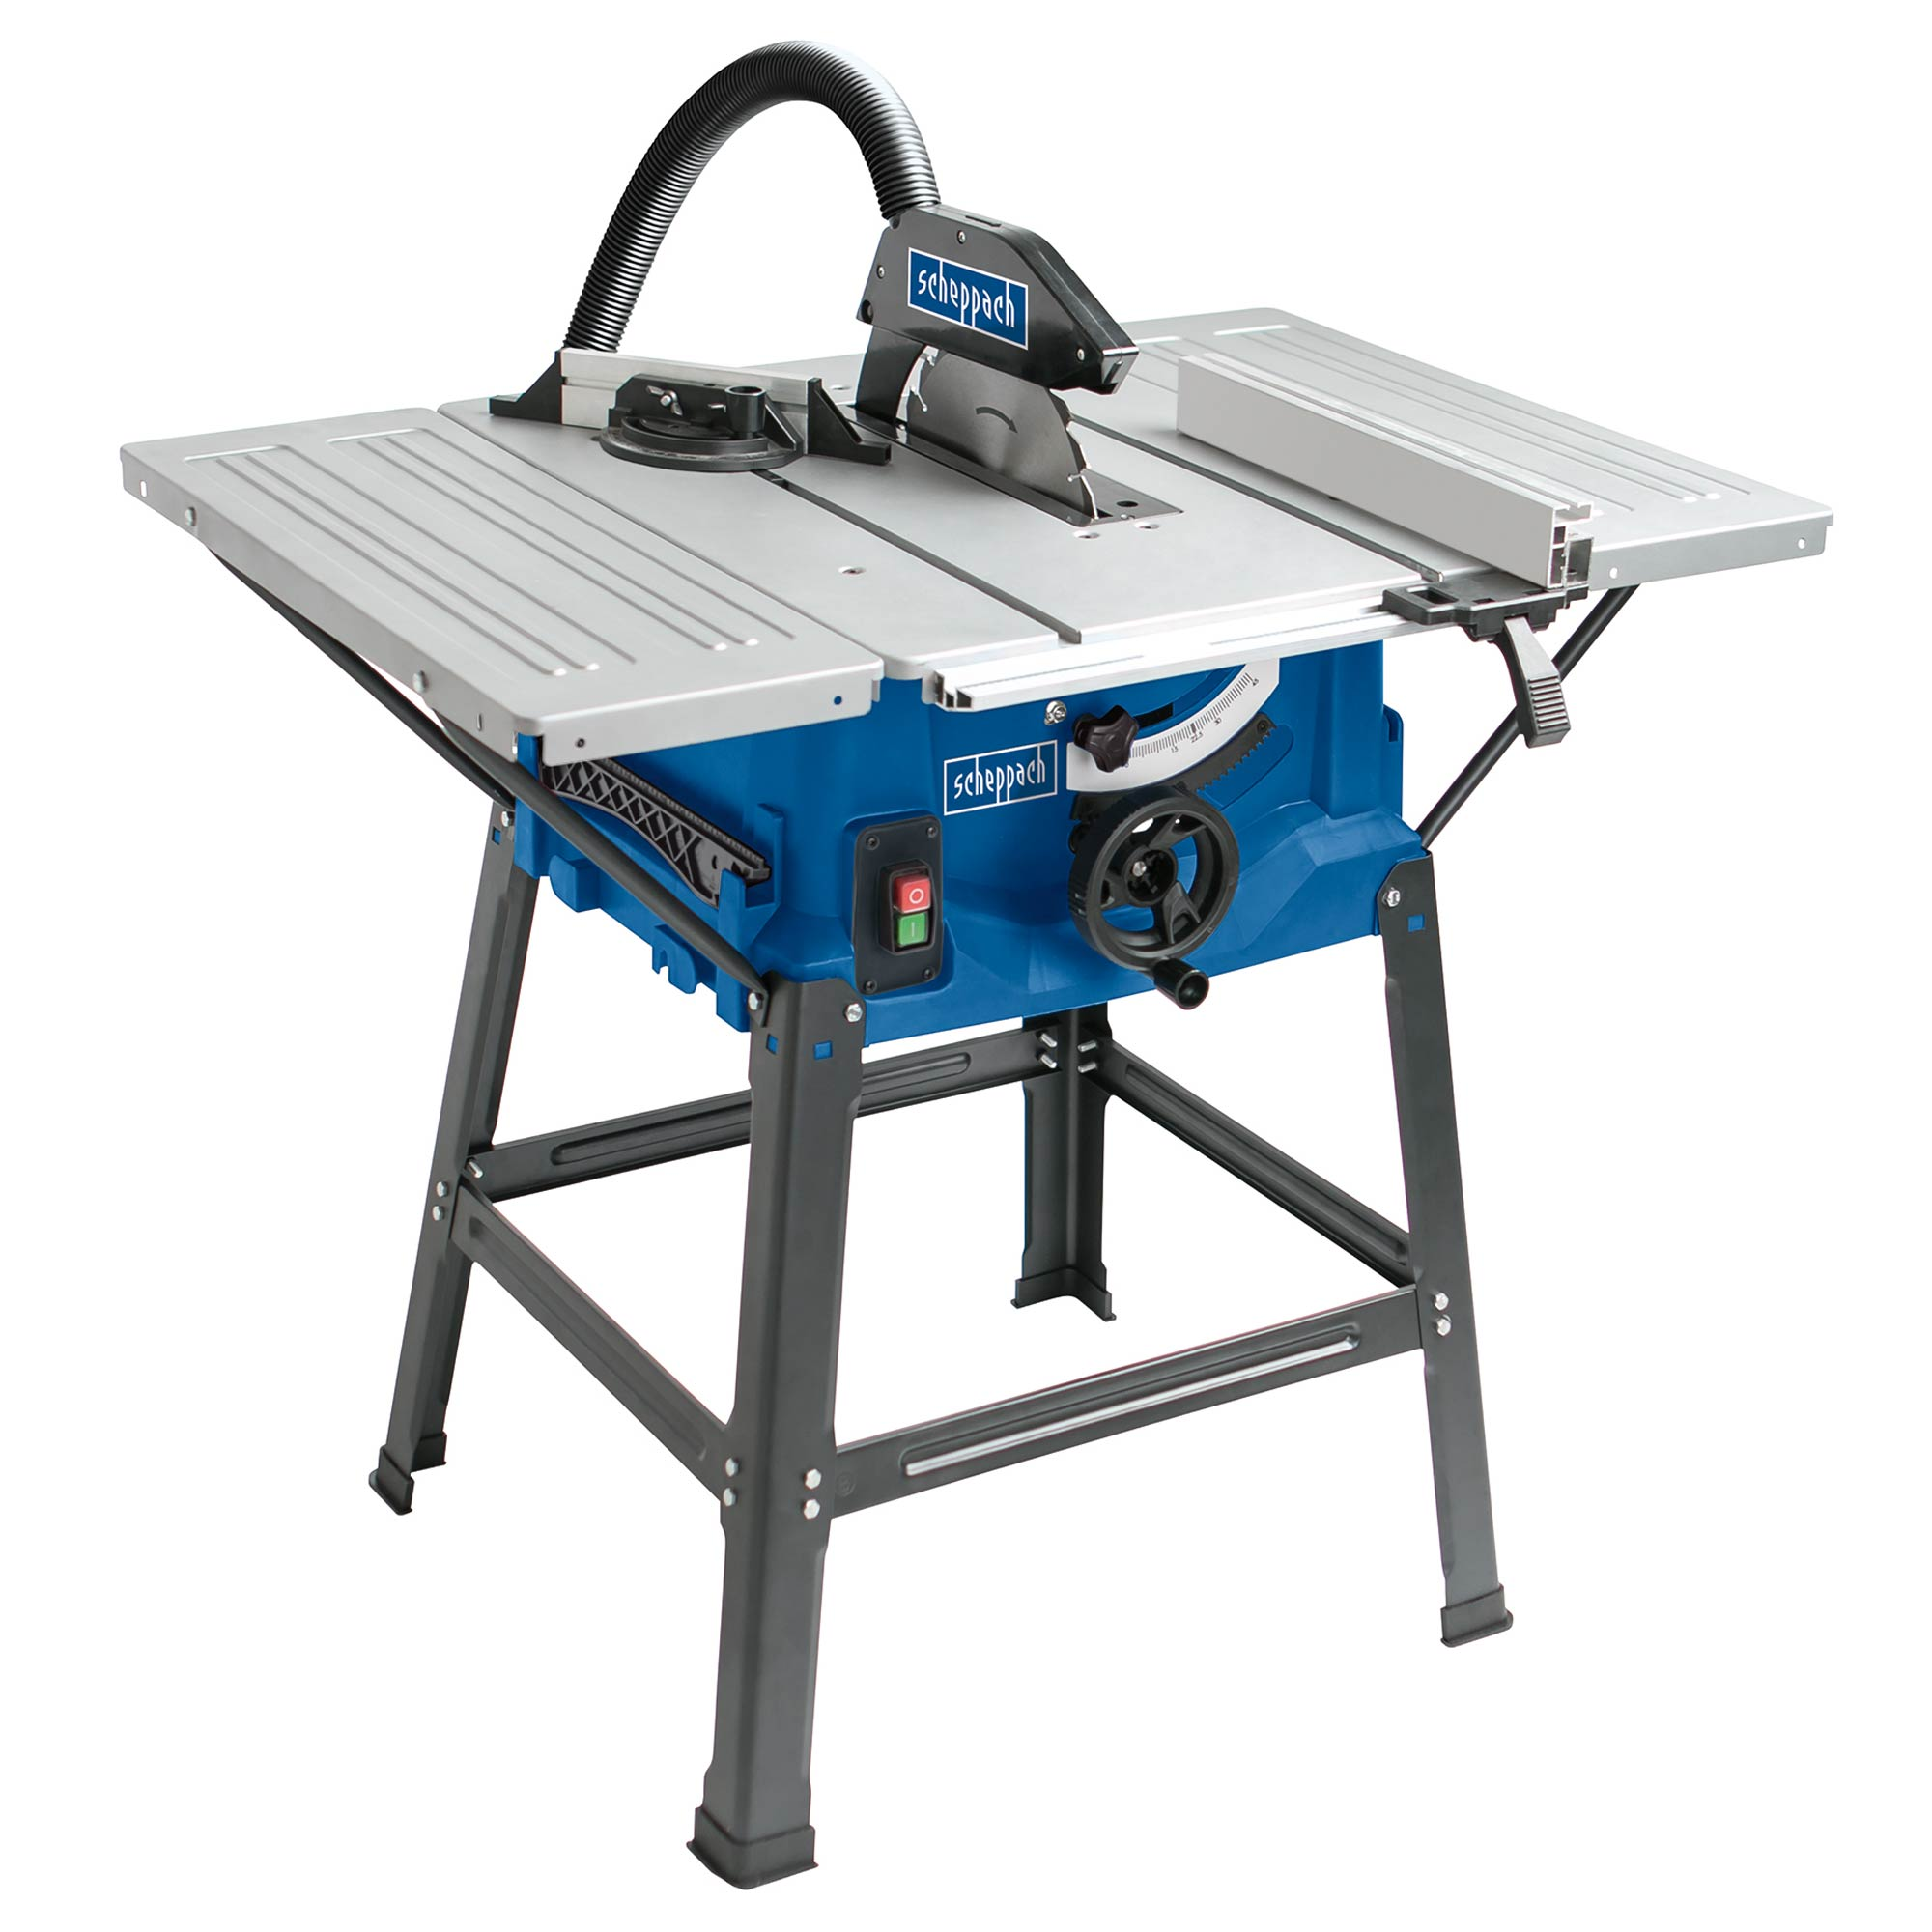 Scheppach hs100s scheppach 10 table saw for 99 table saw